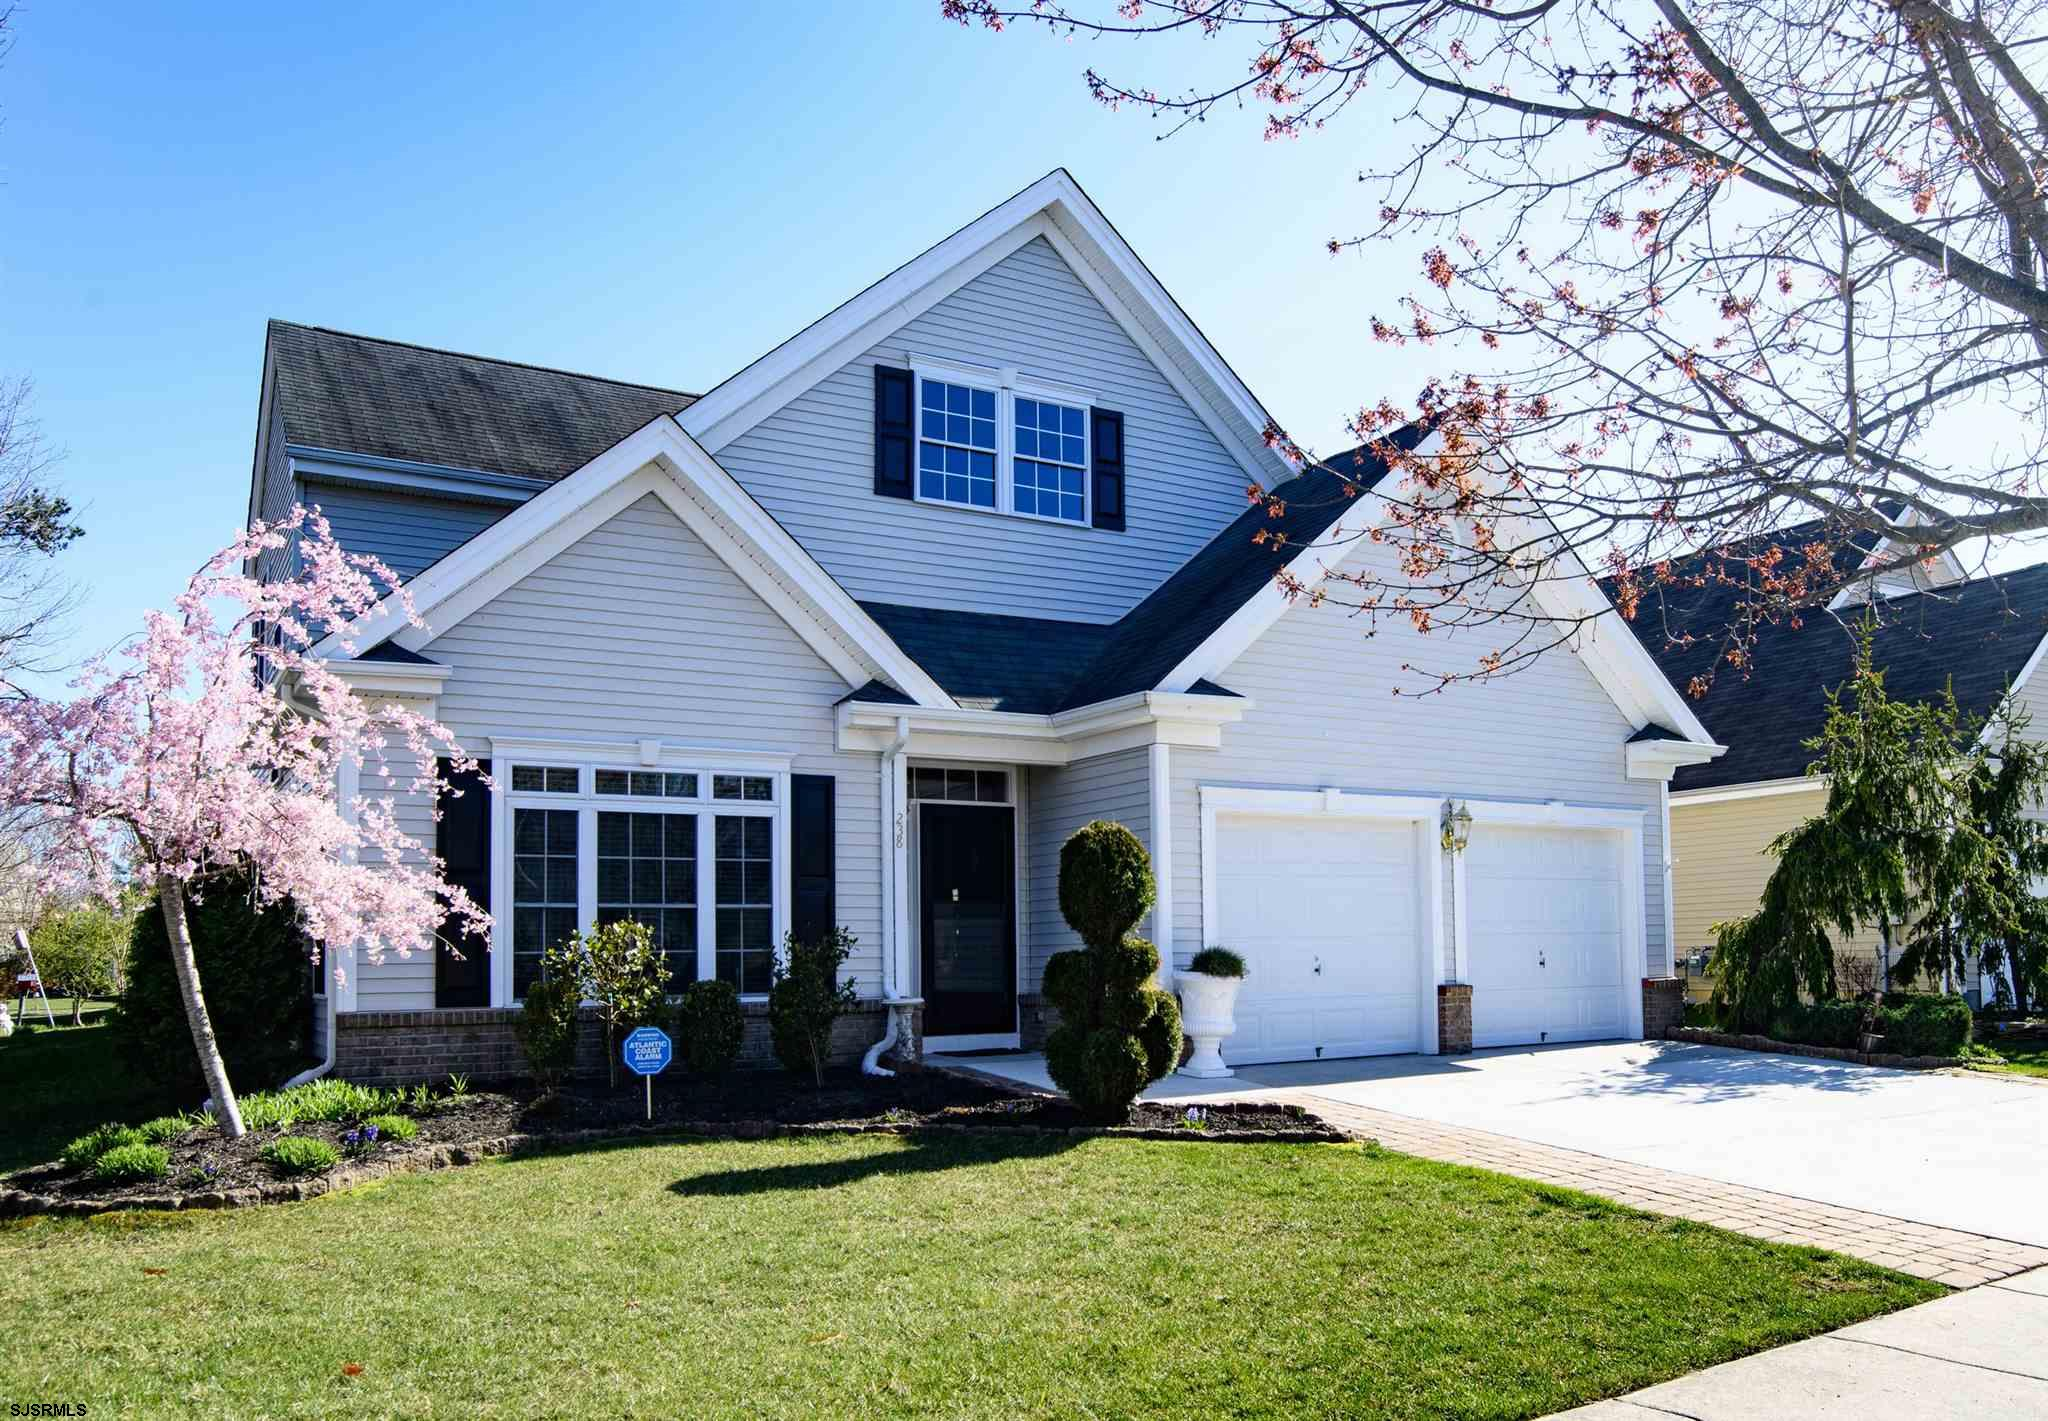 Village Grande at English Mills is one of the premiere adult communities in EHT. It is tasteful & be